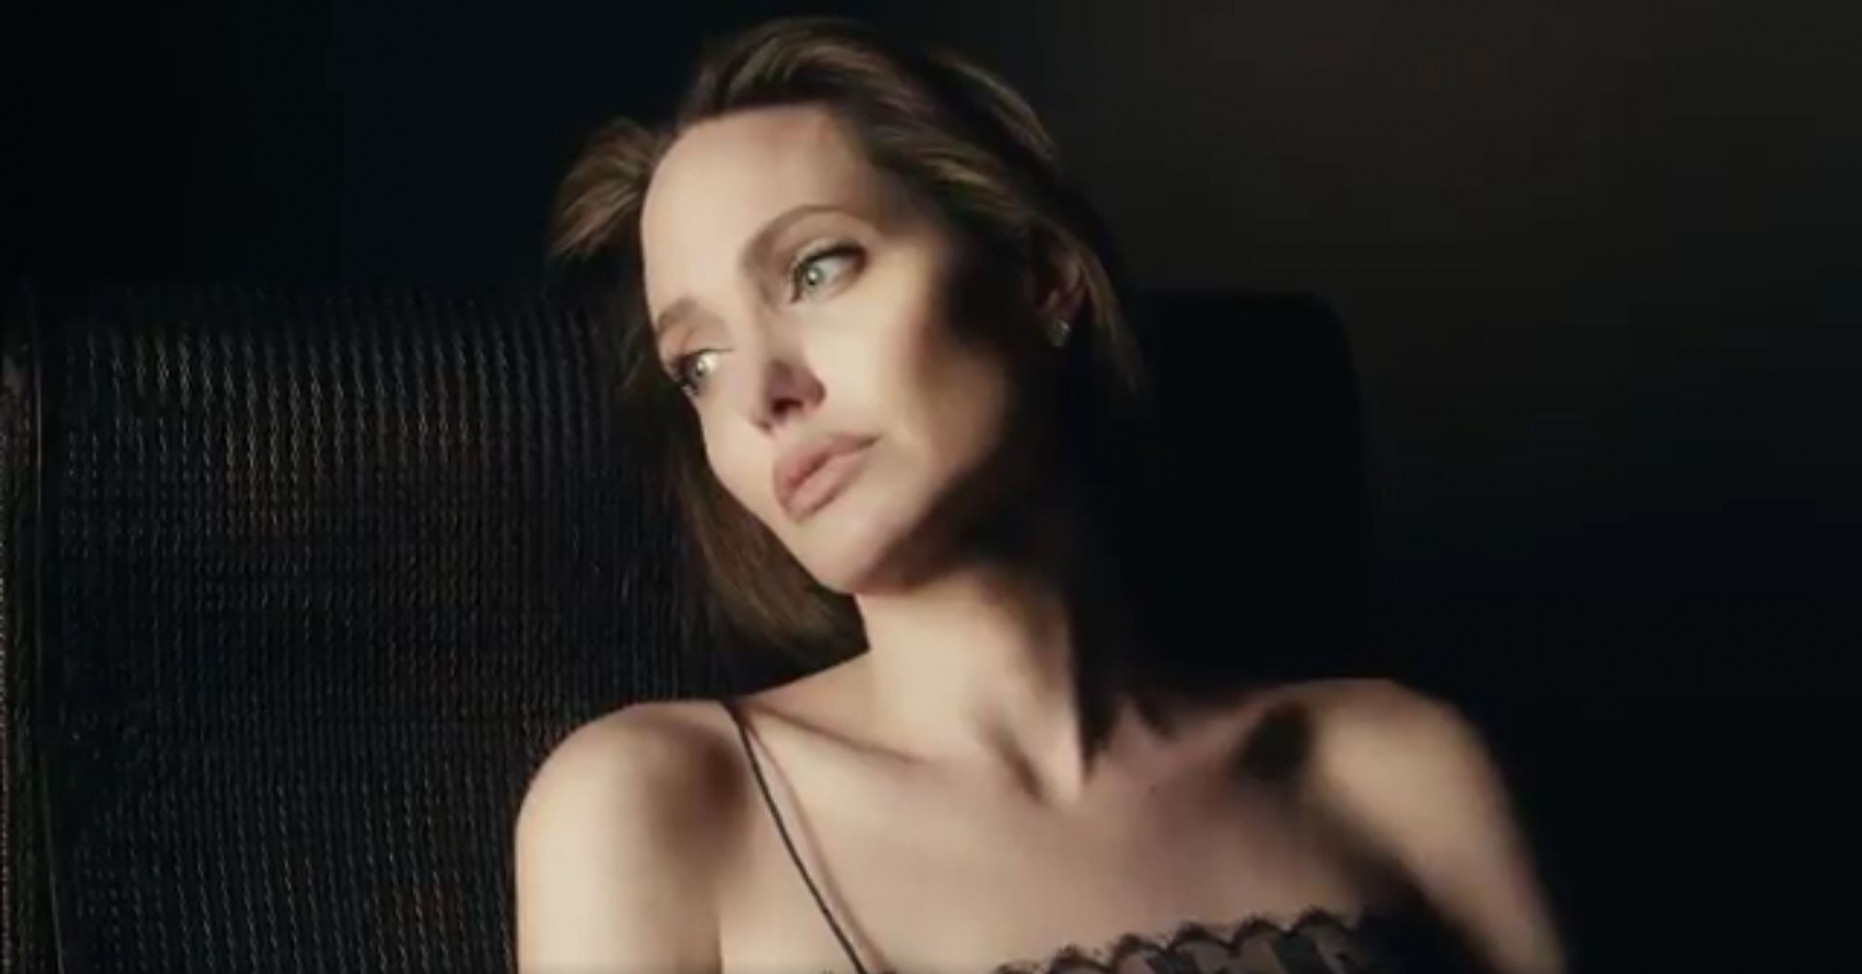 A Day in the Life of Angelina Jolie Includes Staring Out the ...